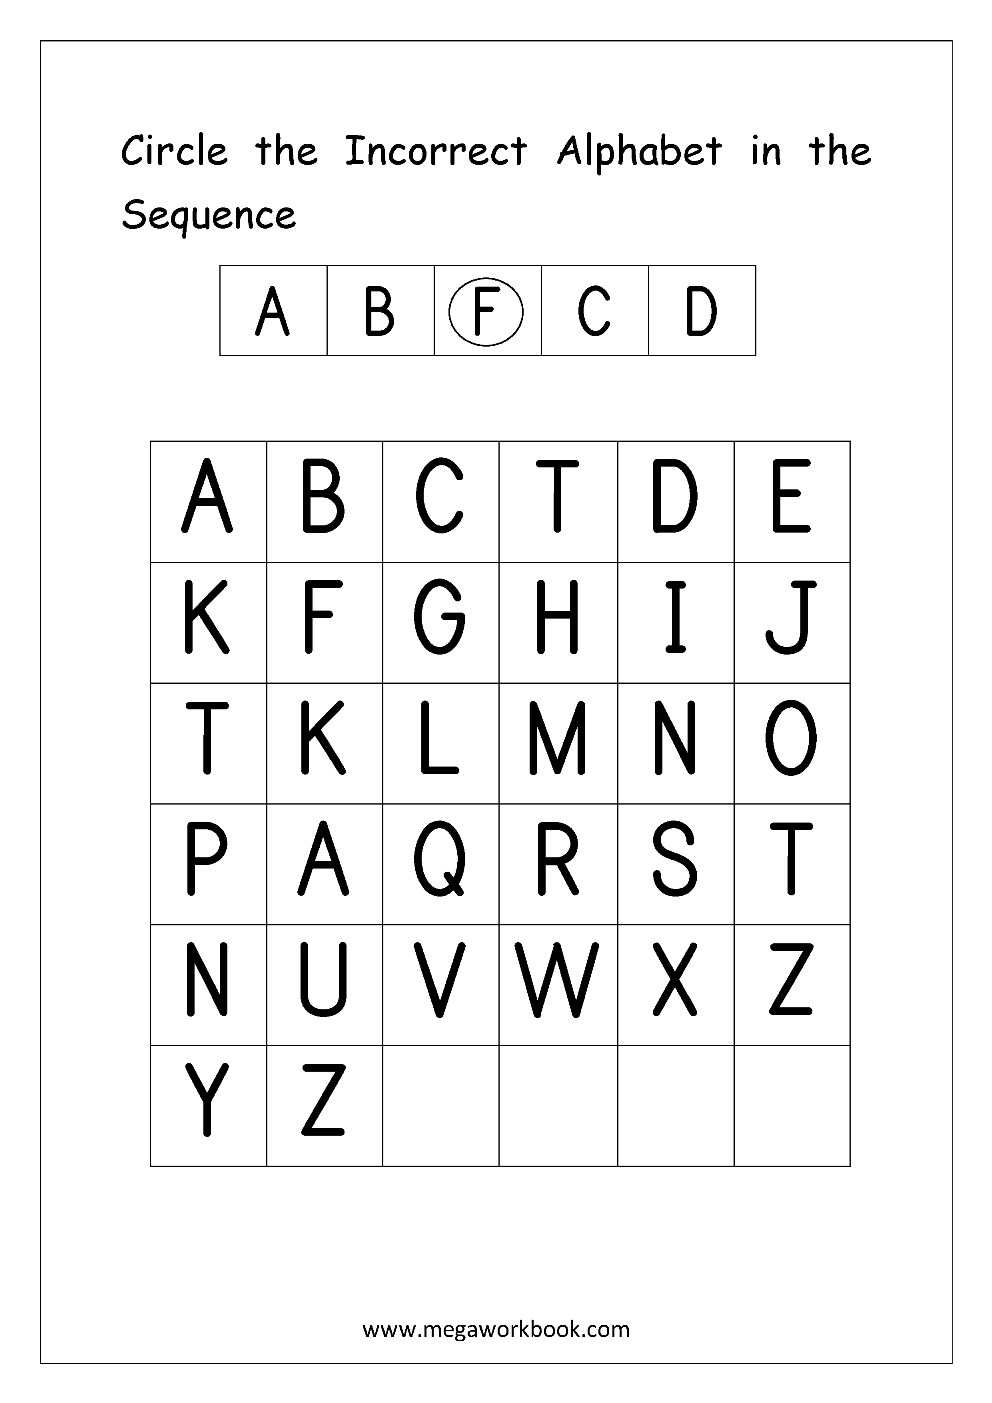 English Worksheets - Alphabetical Sequence | Alphabet pertaining to Alphabet Order Worksheets